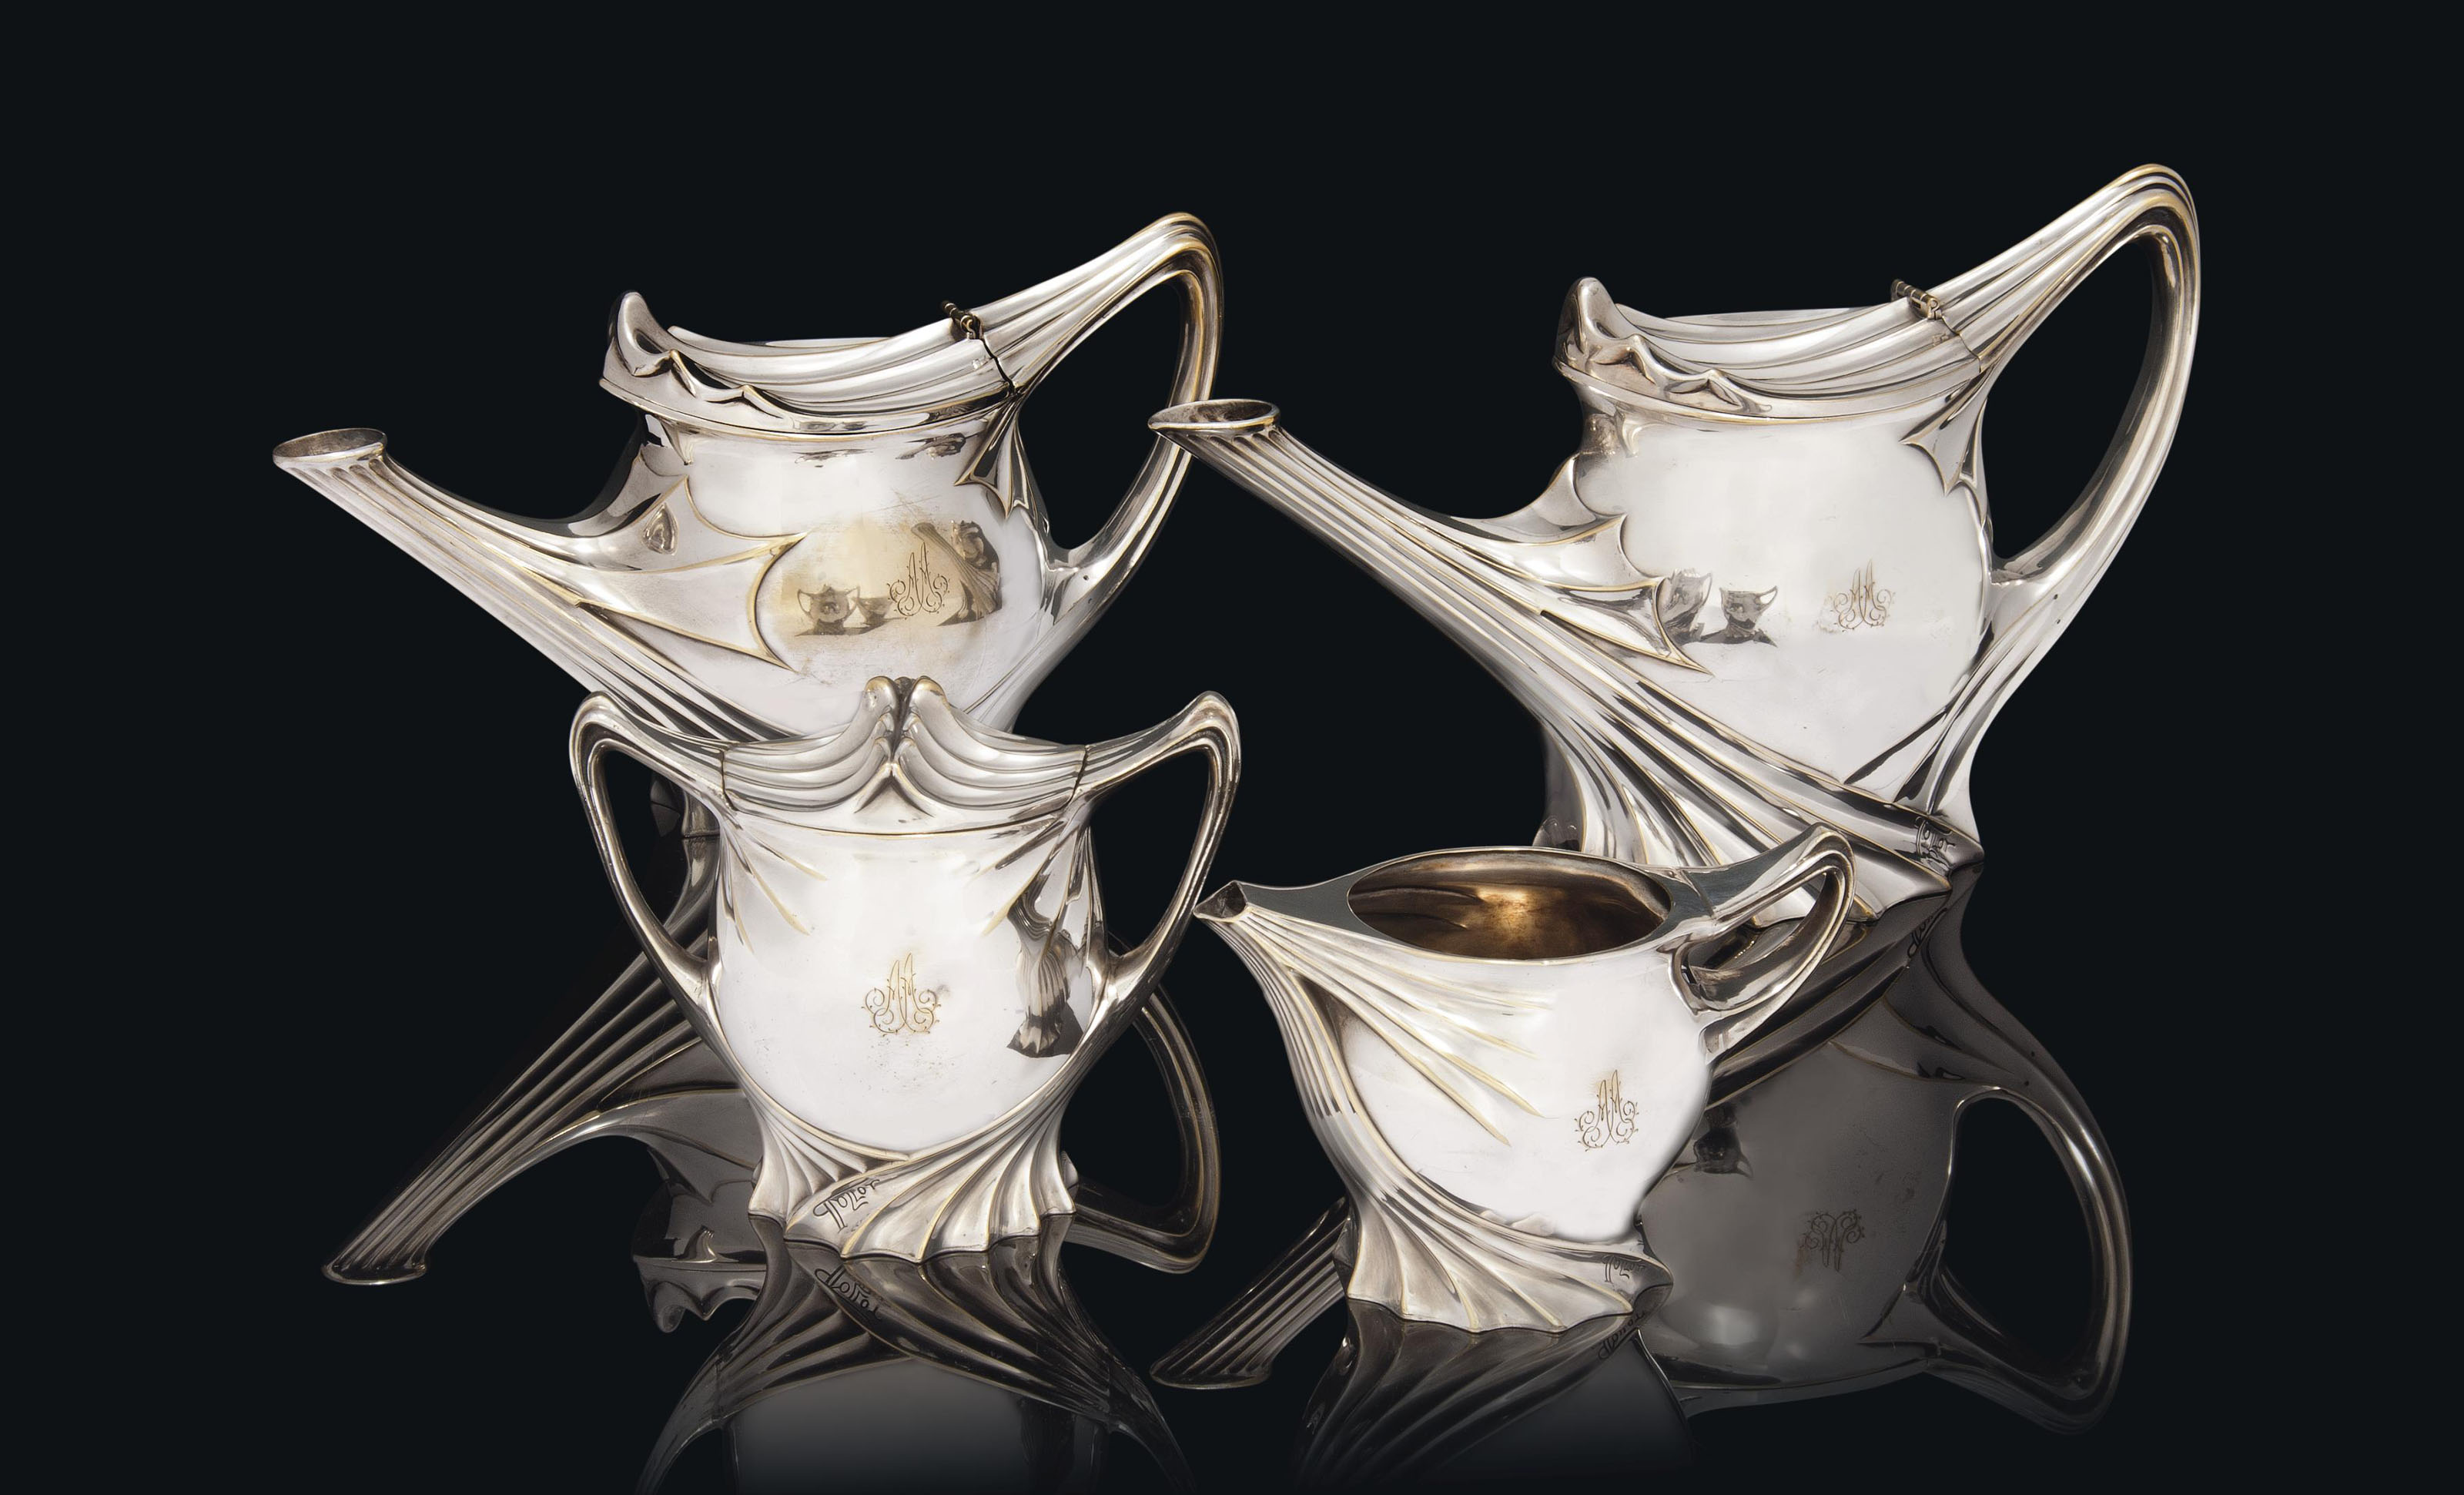 A PAUL FOLLOT (1877-1941) SILVER-PLATED TEA AND COFFEE SET